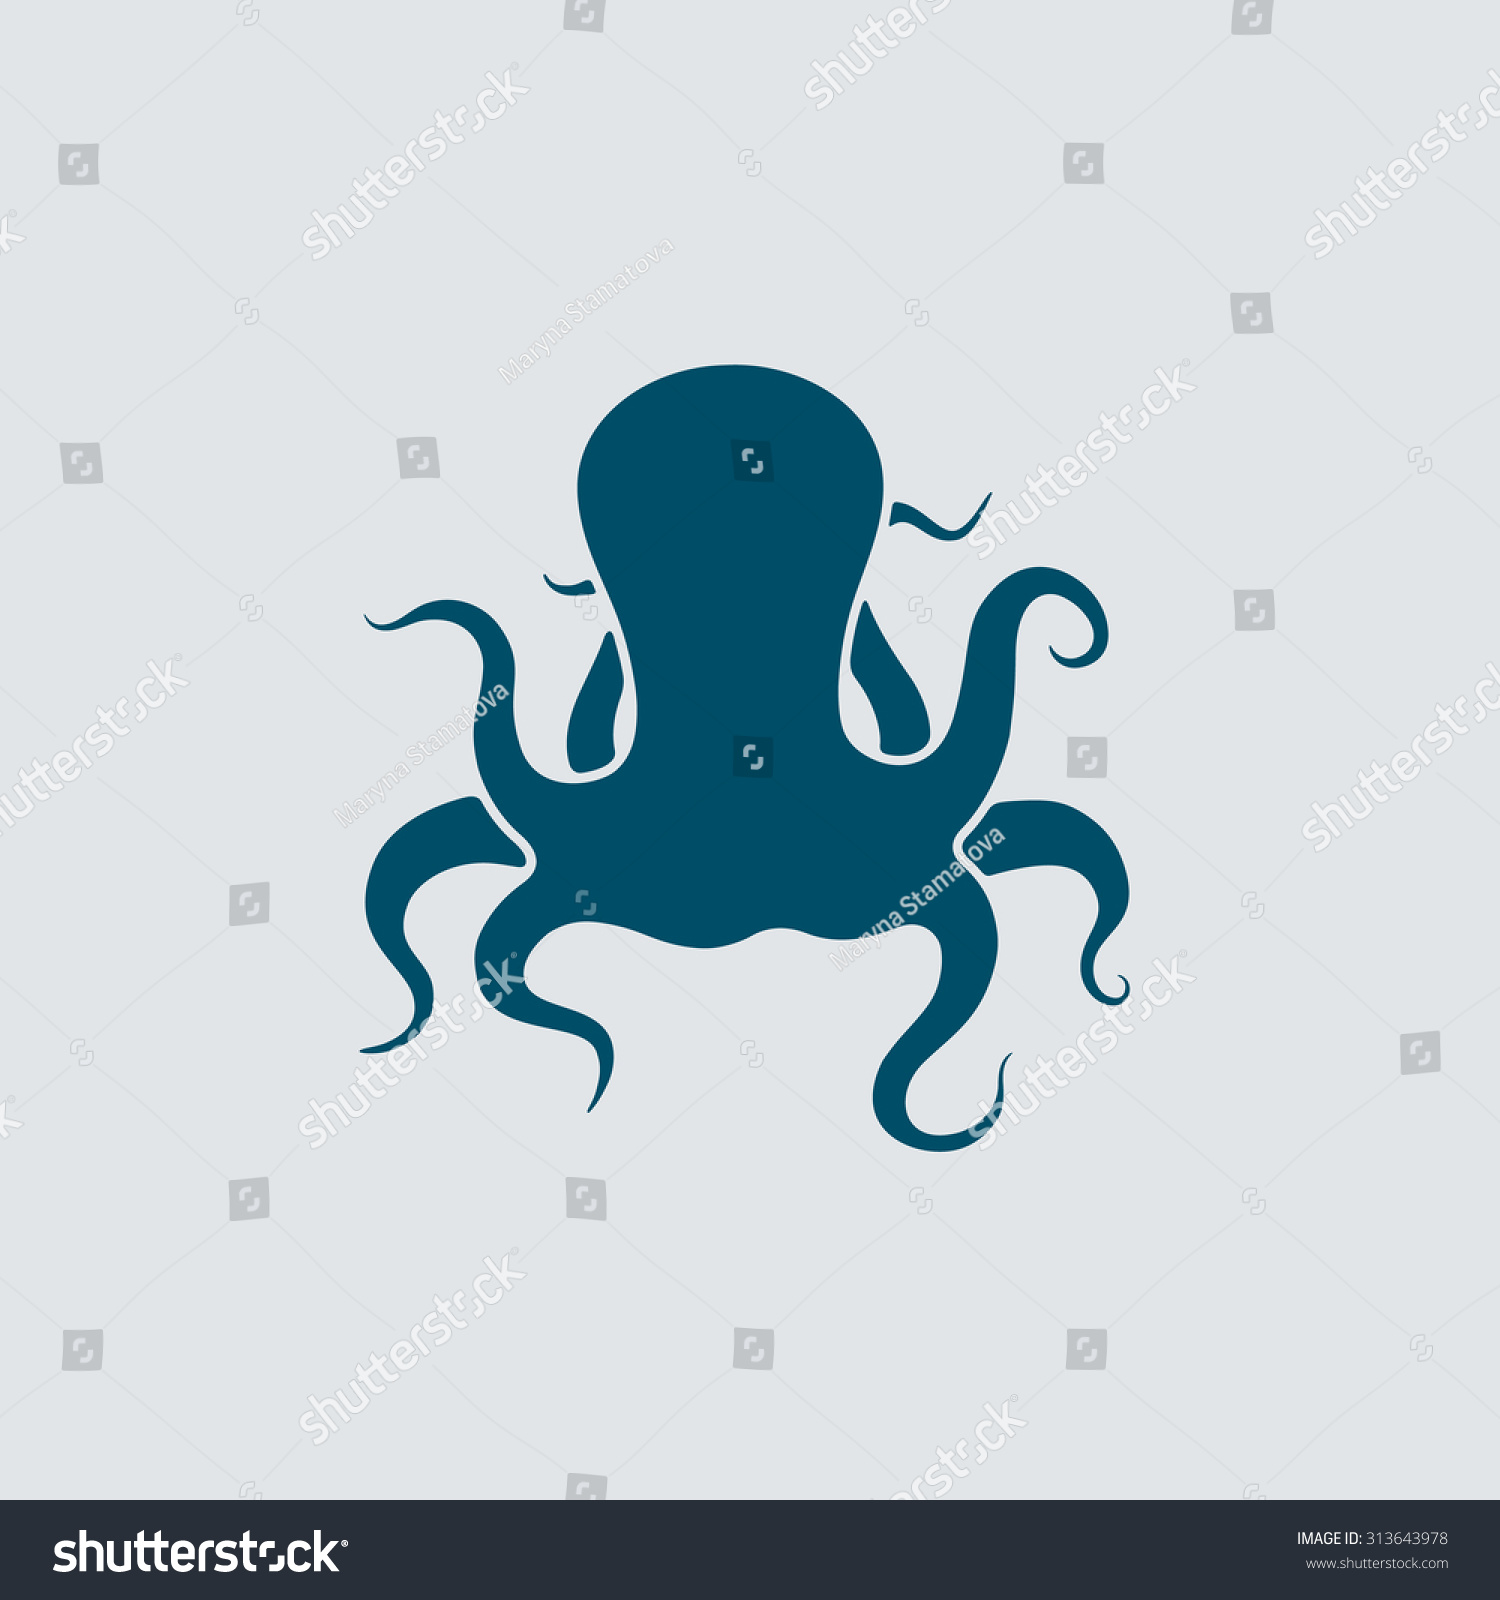 Vector Illustration Octopus Template Logos Labels Stock Vector ...